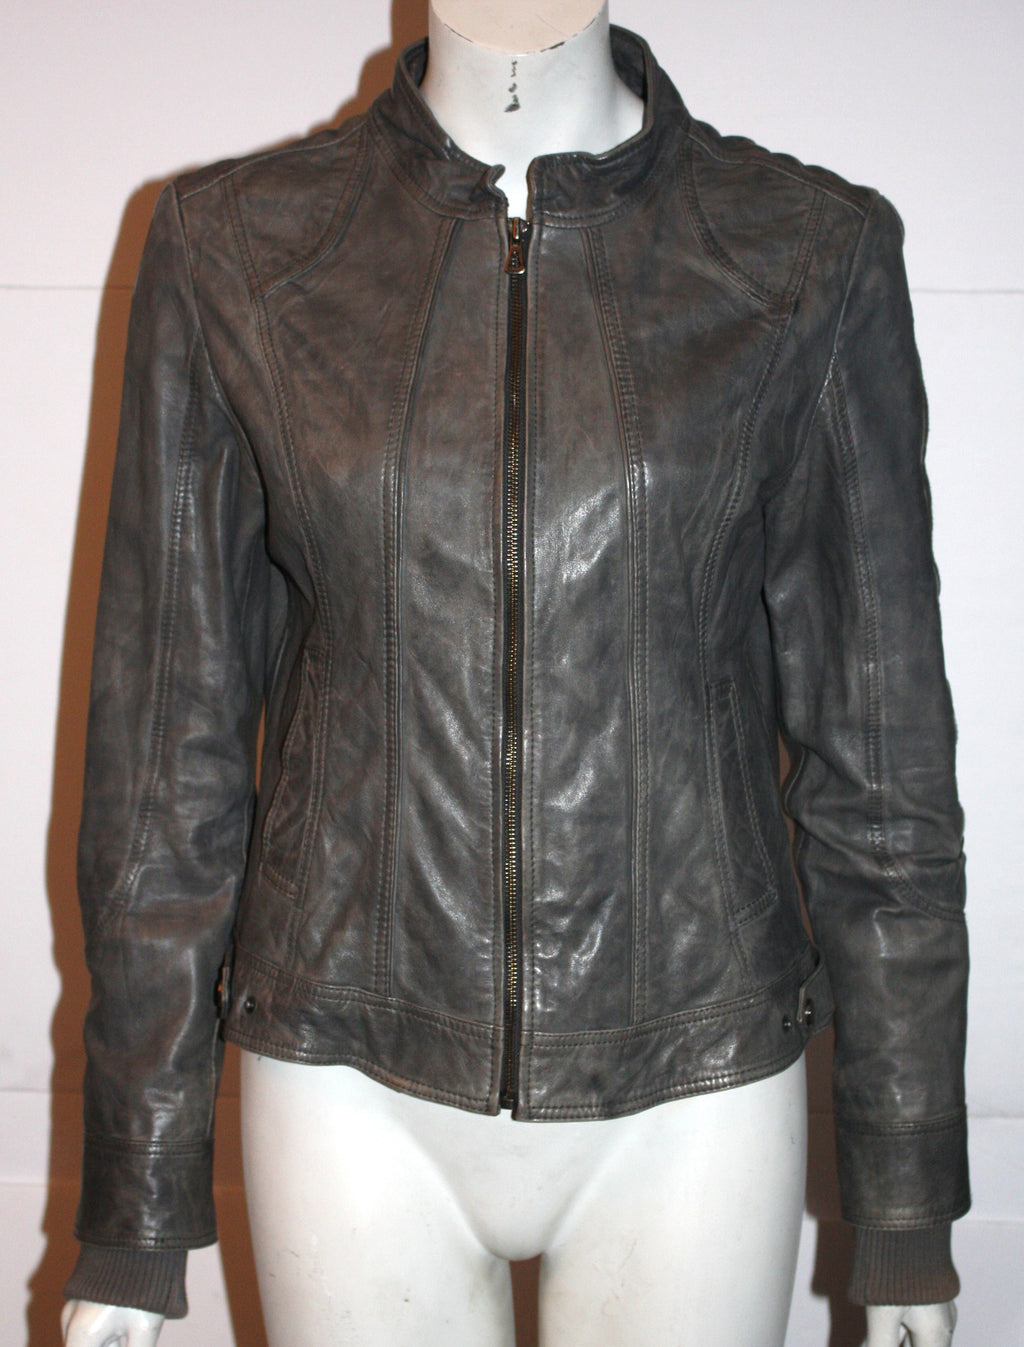 Bod & Christensen Grey Leather Motorcycle Jacket - Joyce's Closet  - 1